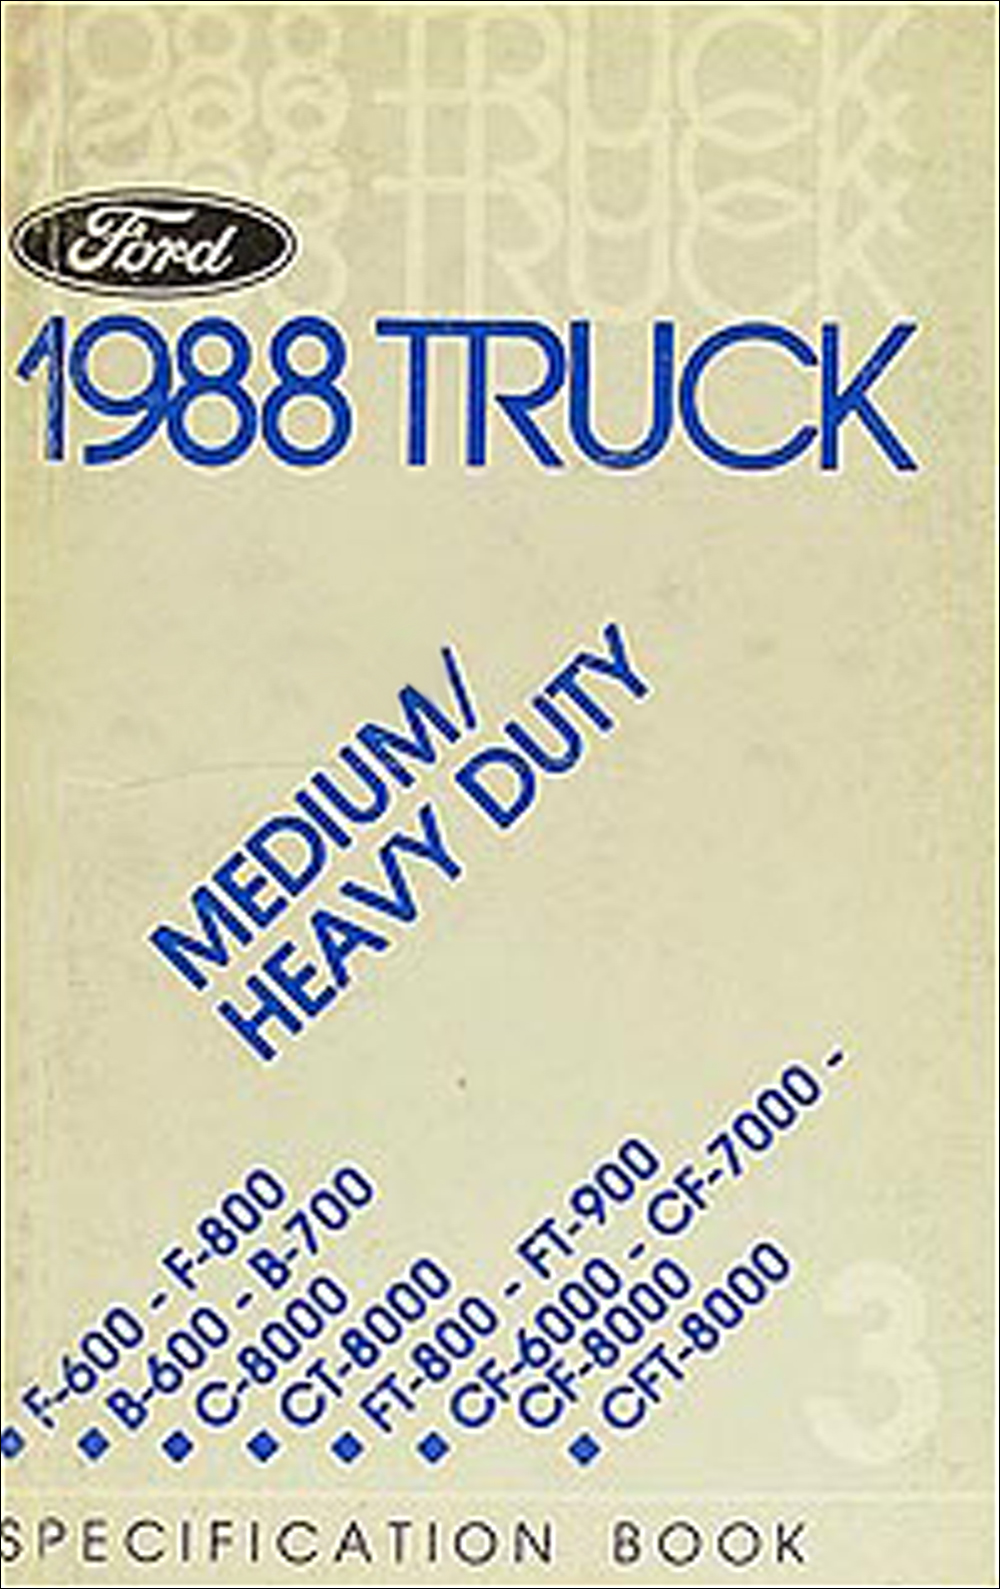 1988 Ford Medium and Heavy Duty Truck Service Specifications Book